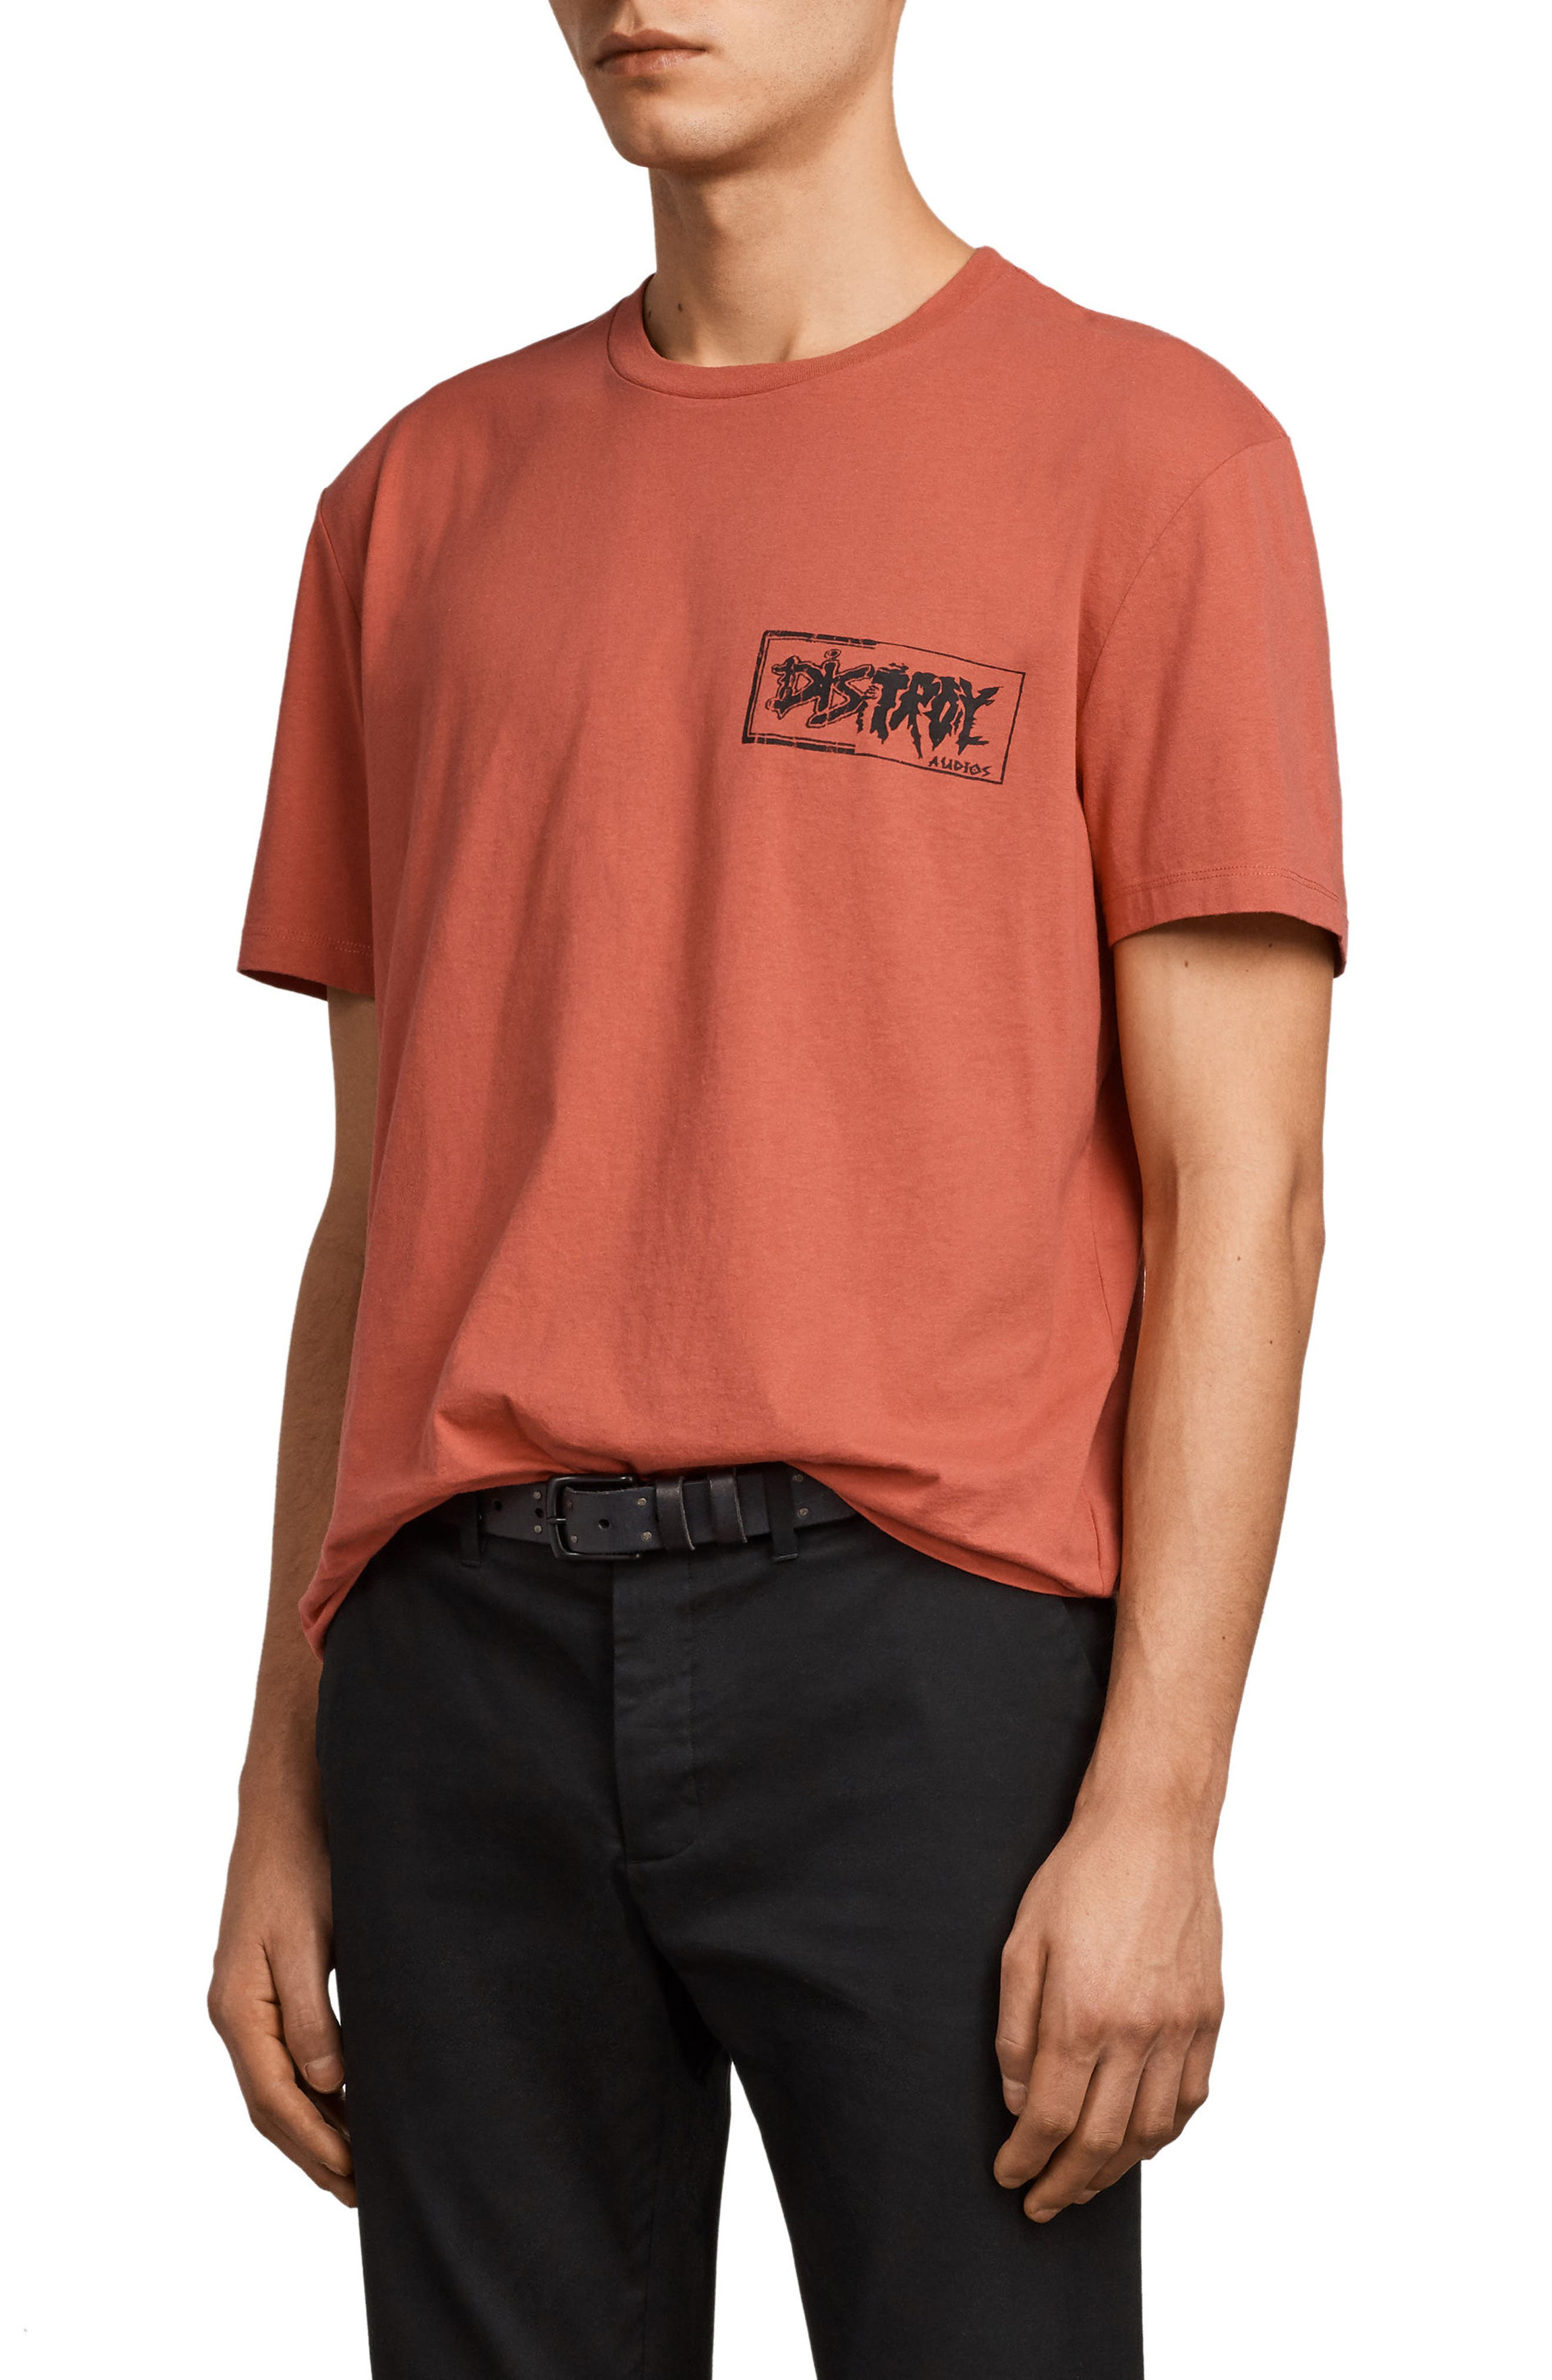 Distroy Graphic T-Shirt,                             Alternate thumbnail 3, color,                             Block Red/ Black